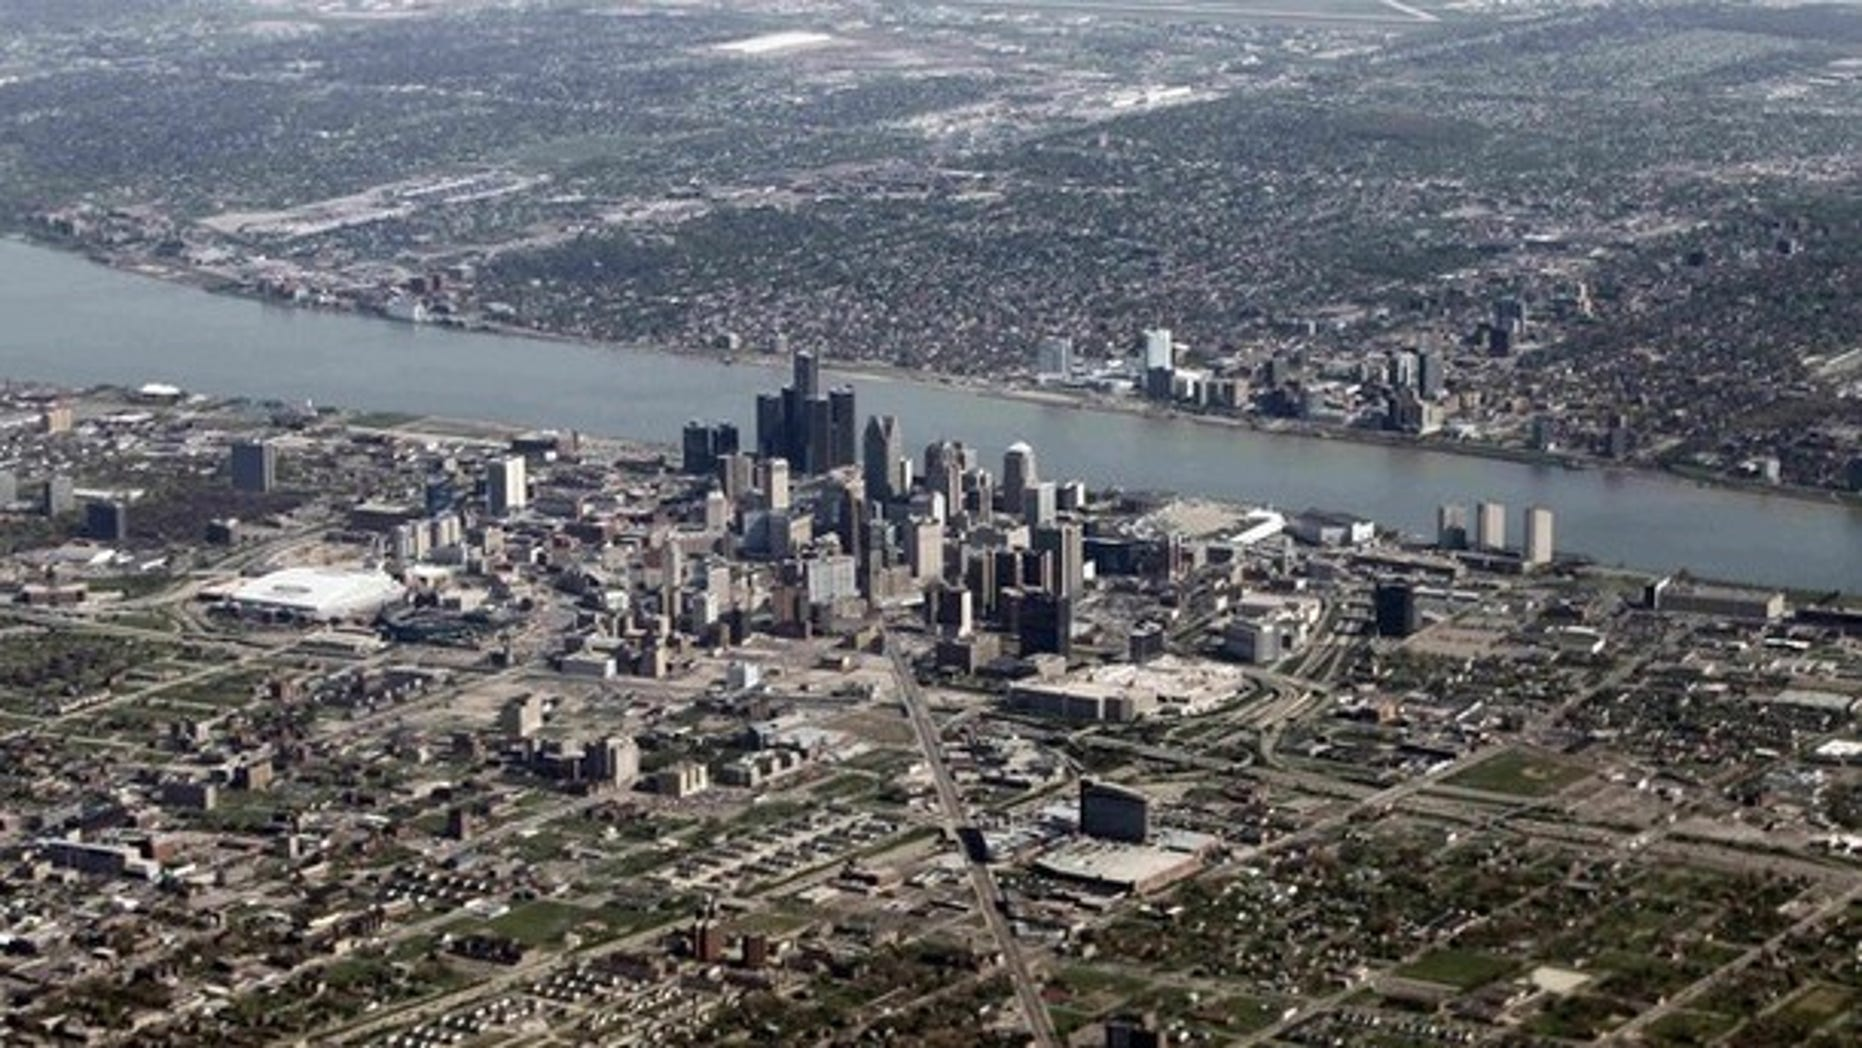 An aerial view of Detroit, Mich., seen in the foreground, while Windsor, Ontario lies on the opposite side of the Detroit River.